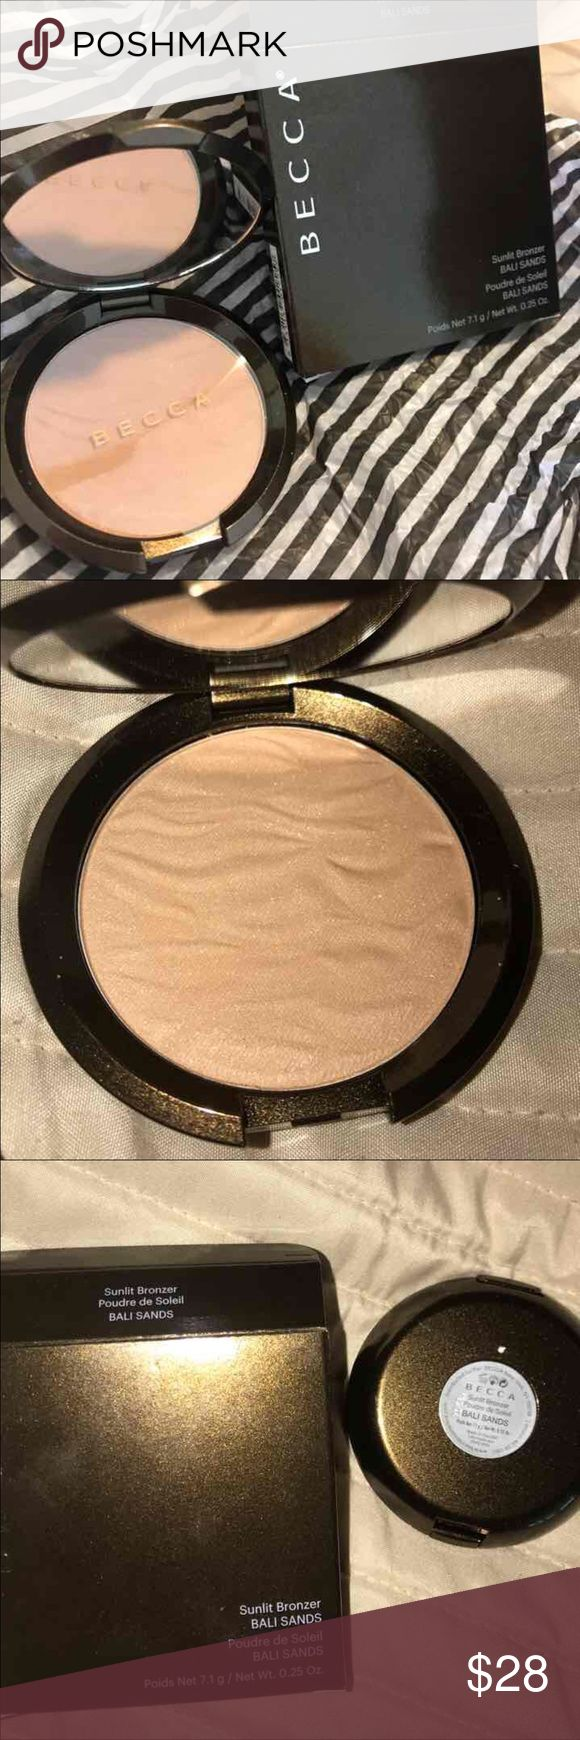 "NWT! BECCA SUNLIT BRONZER ""BALI SANDS"" New product. LOVE IT!! Shade is ""BALI SANDS"". Price is firm unless bundled. Thanks for looking. BECCA Makeup Bronzer"